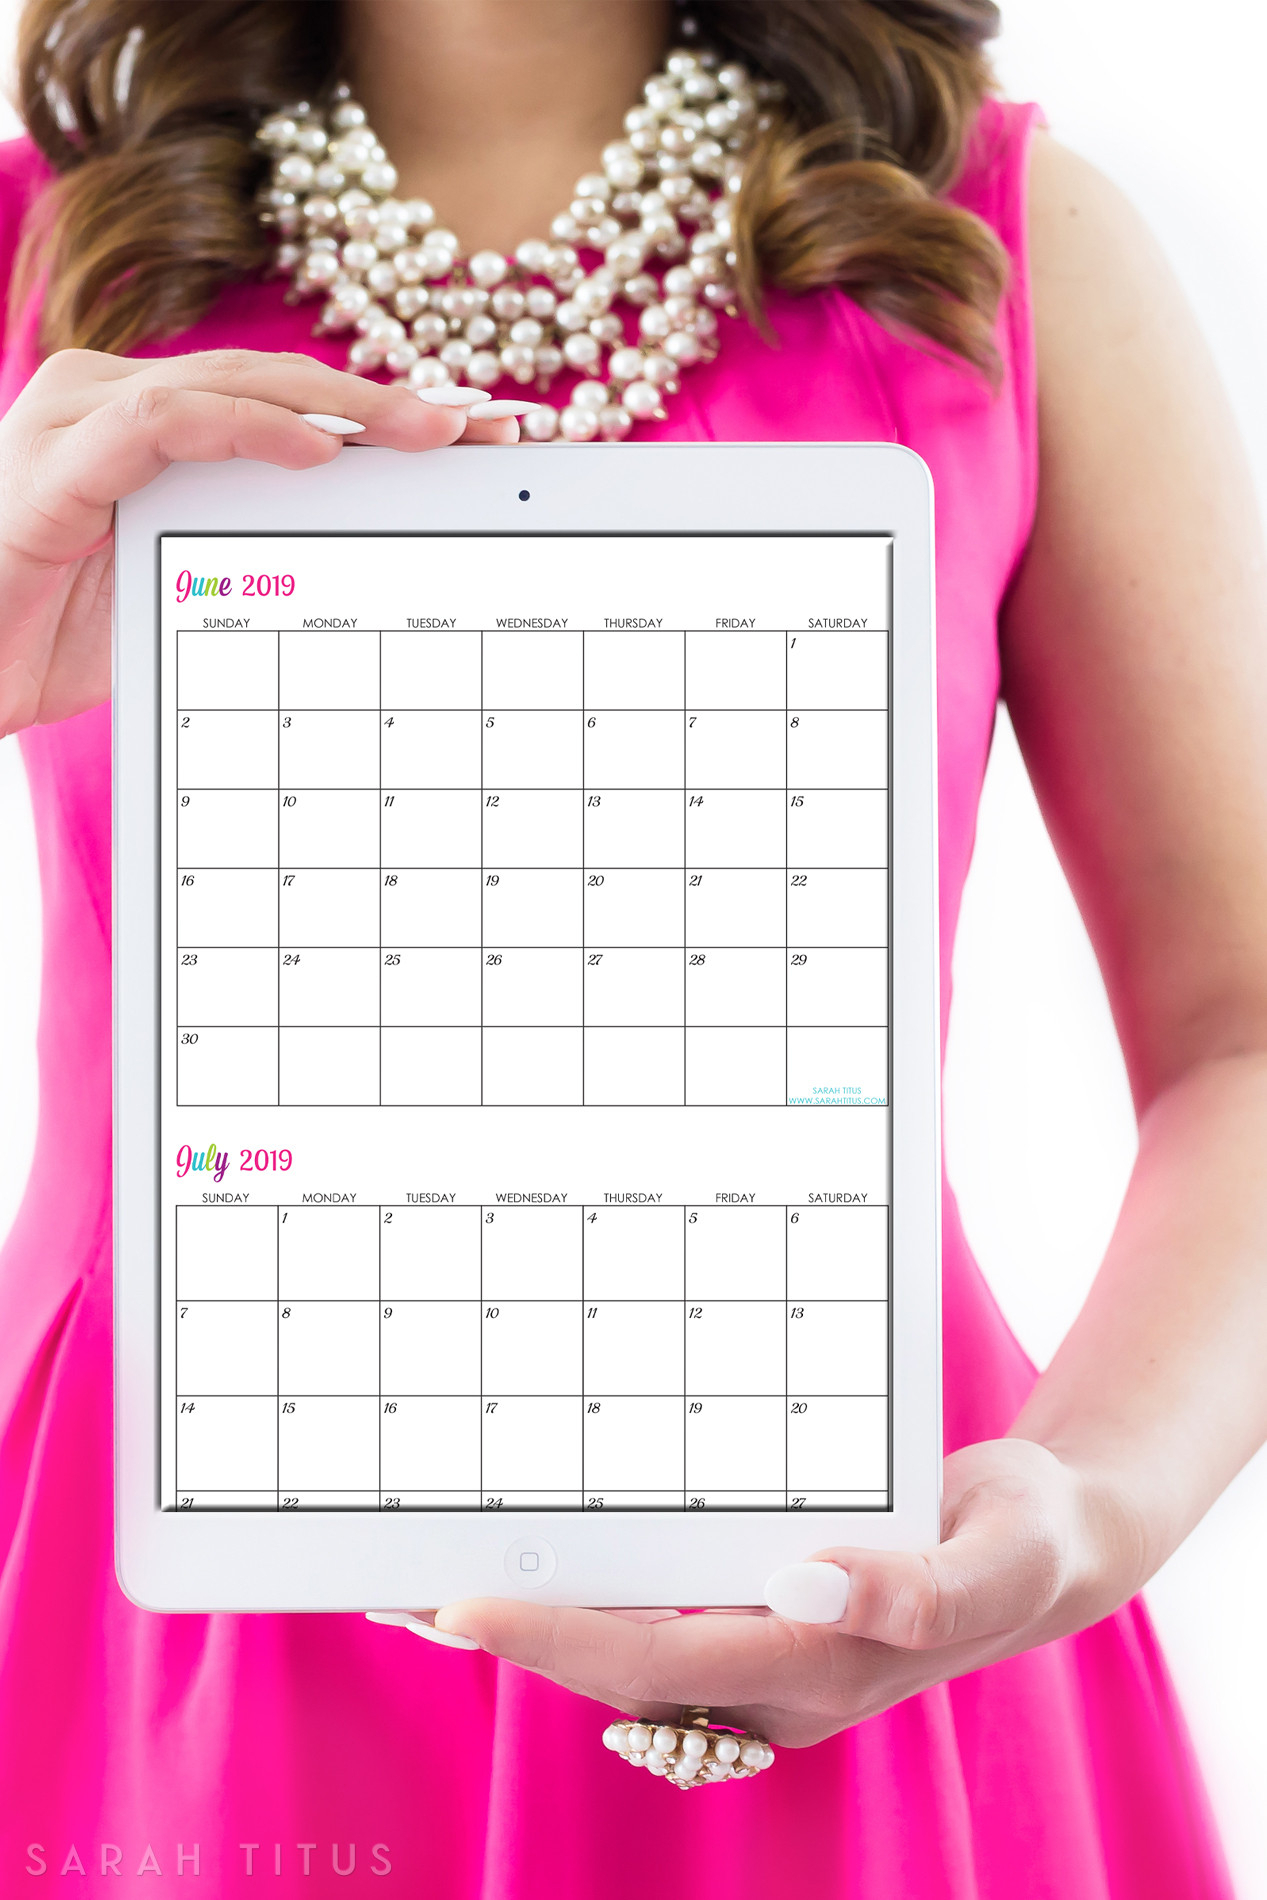 30 Customizable Calendar Template 2019 | Andaluzseattle with Sarah Titus Calendar